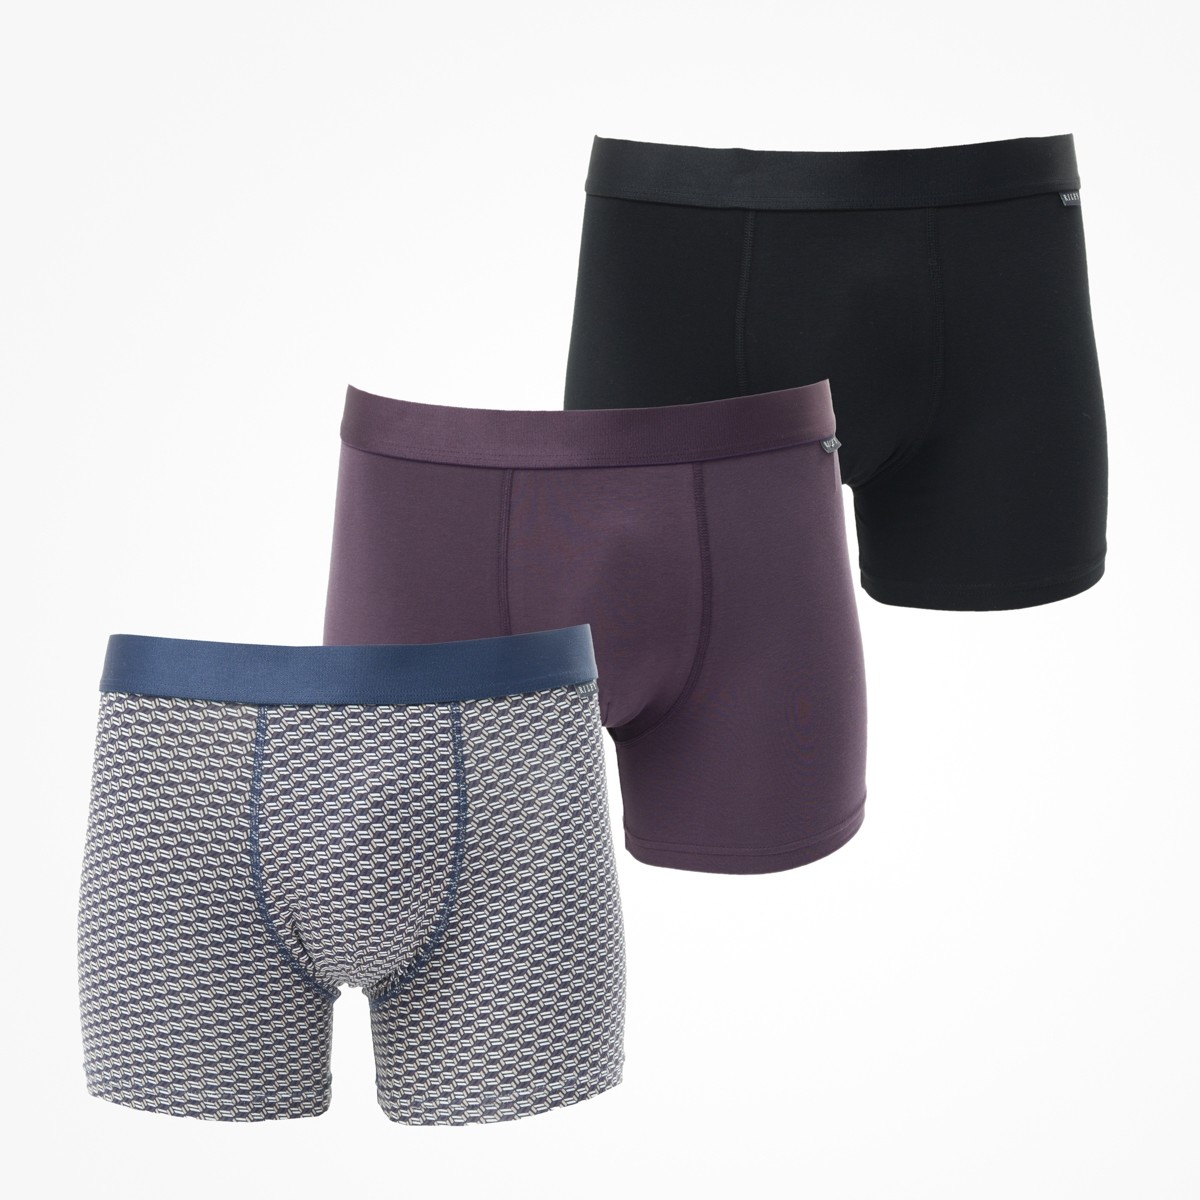 Cube 3-pack Kalsonger Brief Multi | Riley | Brothers.se